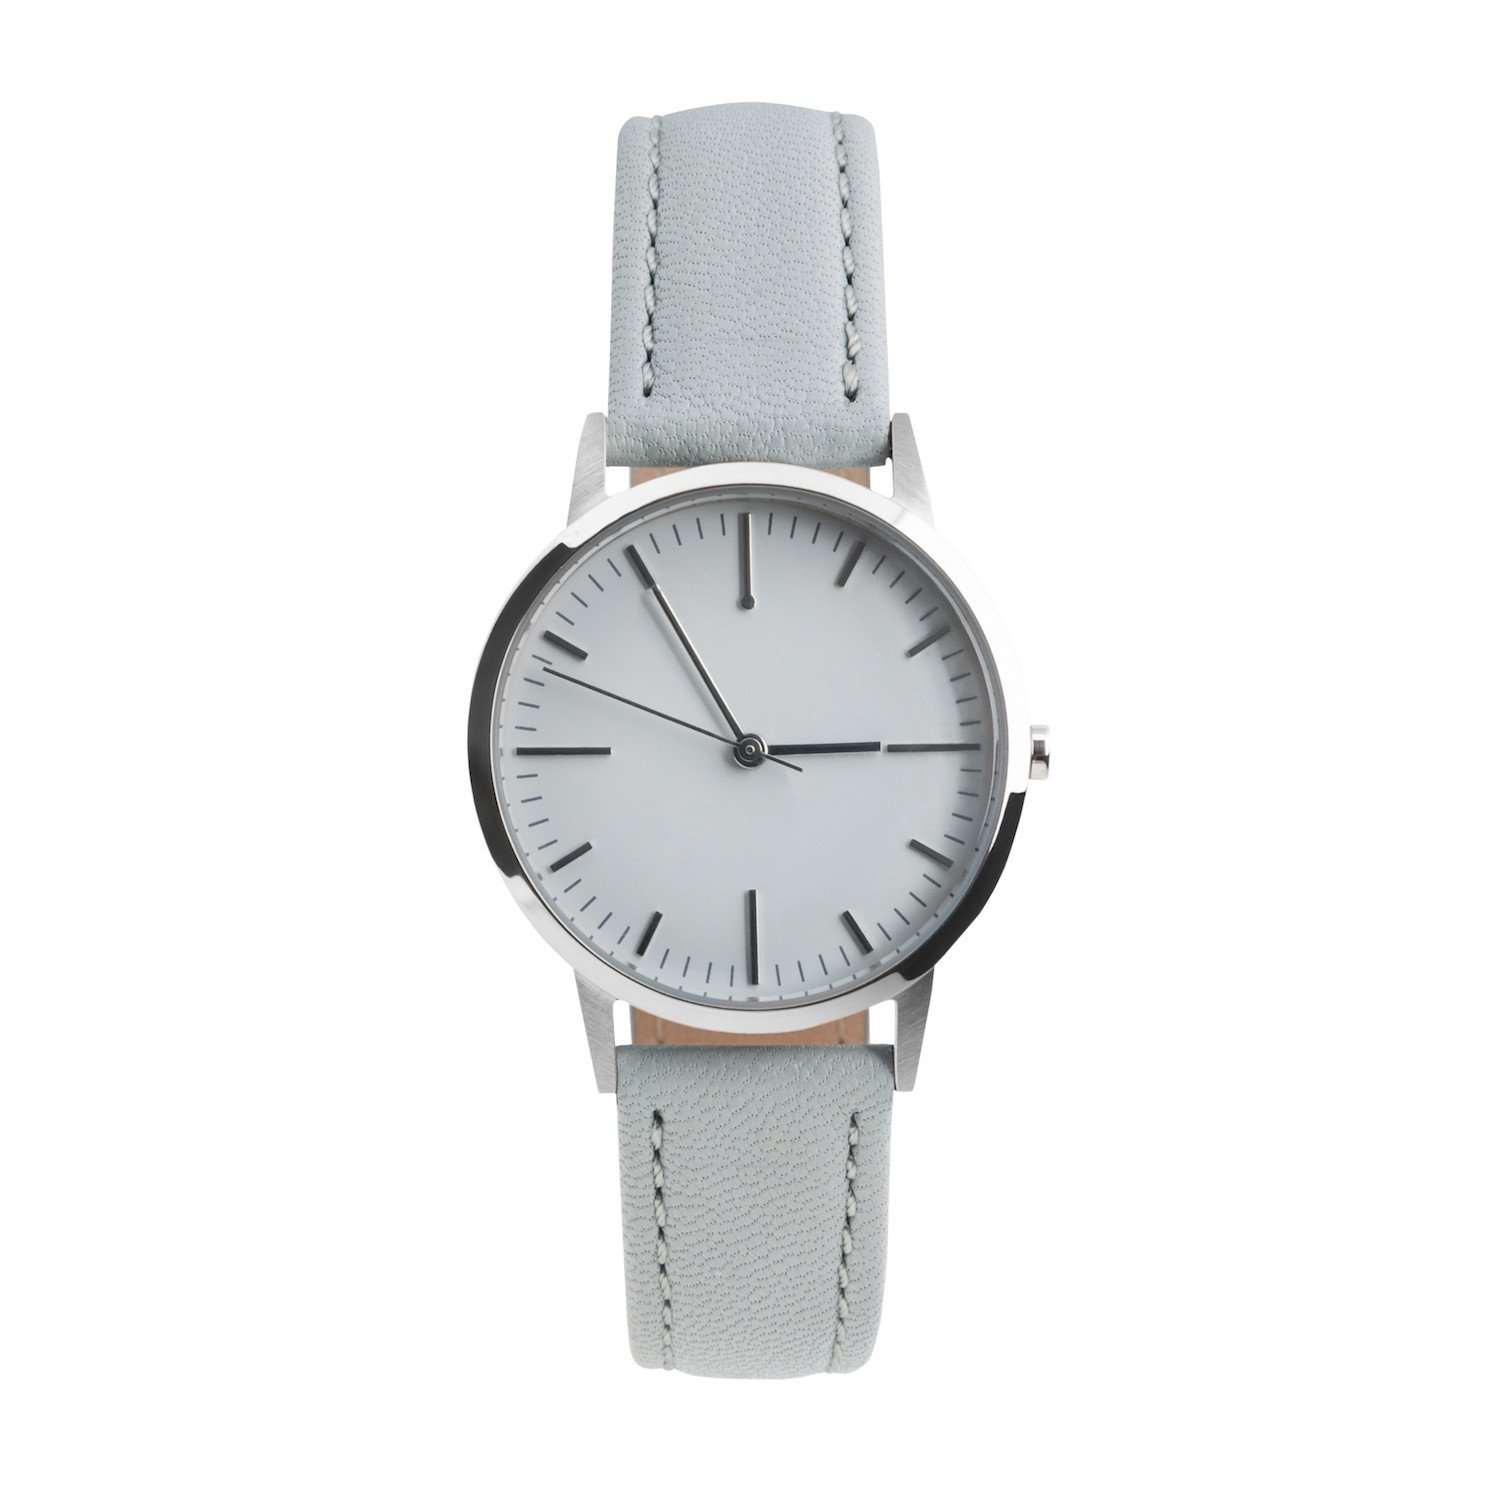 Small Silver & Grey Simple Watch | Freedom To Exist